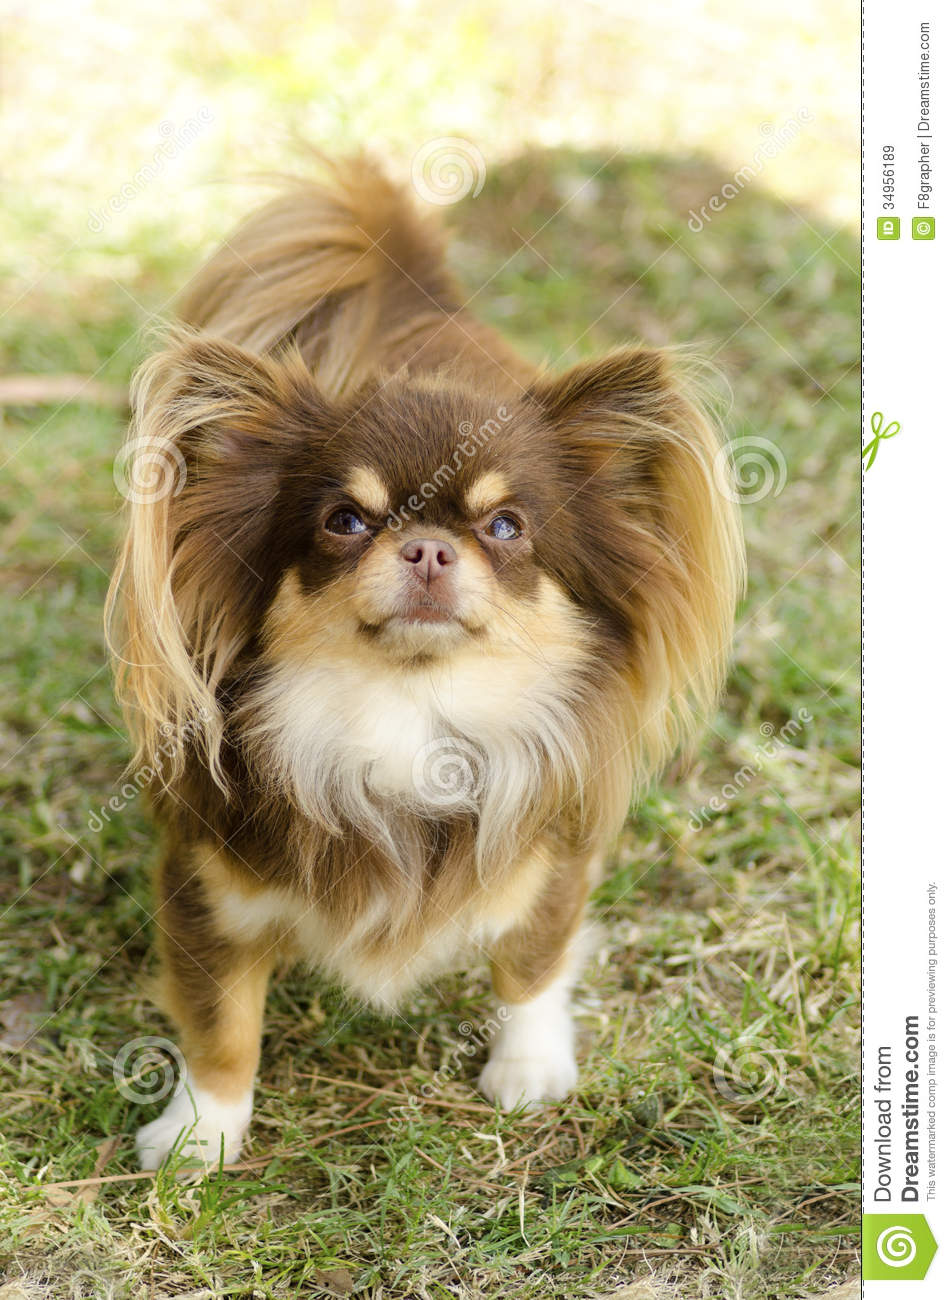 Chihuahua Royalty Free Stock Images - Image: 34956189